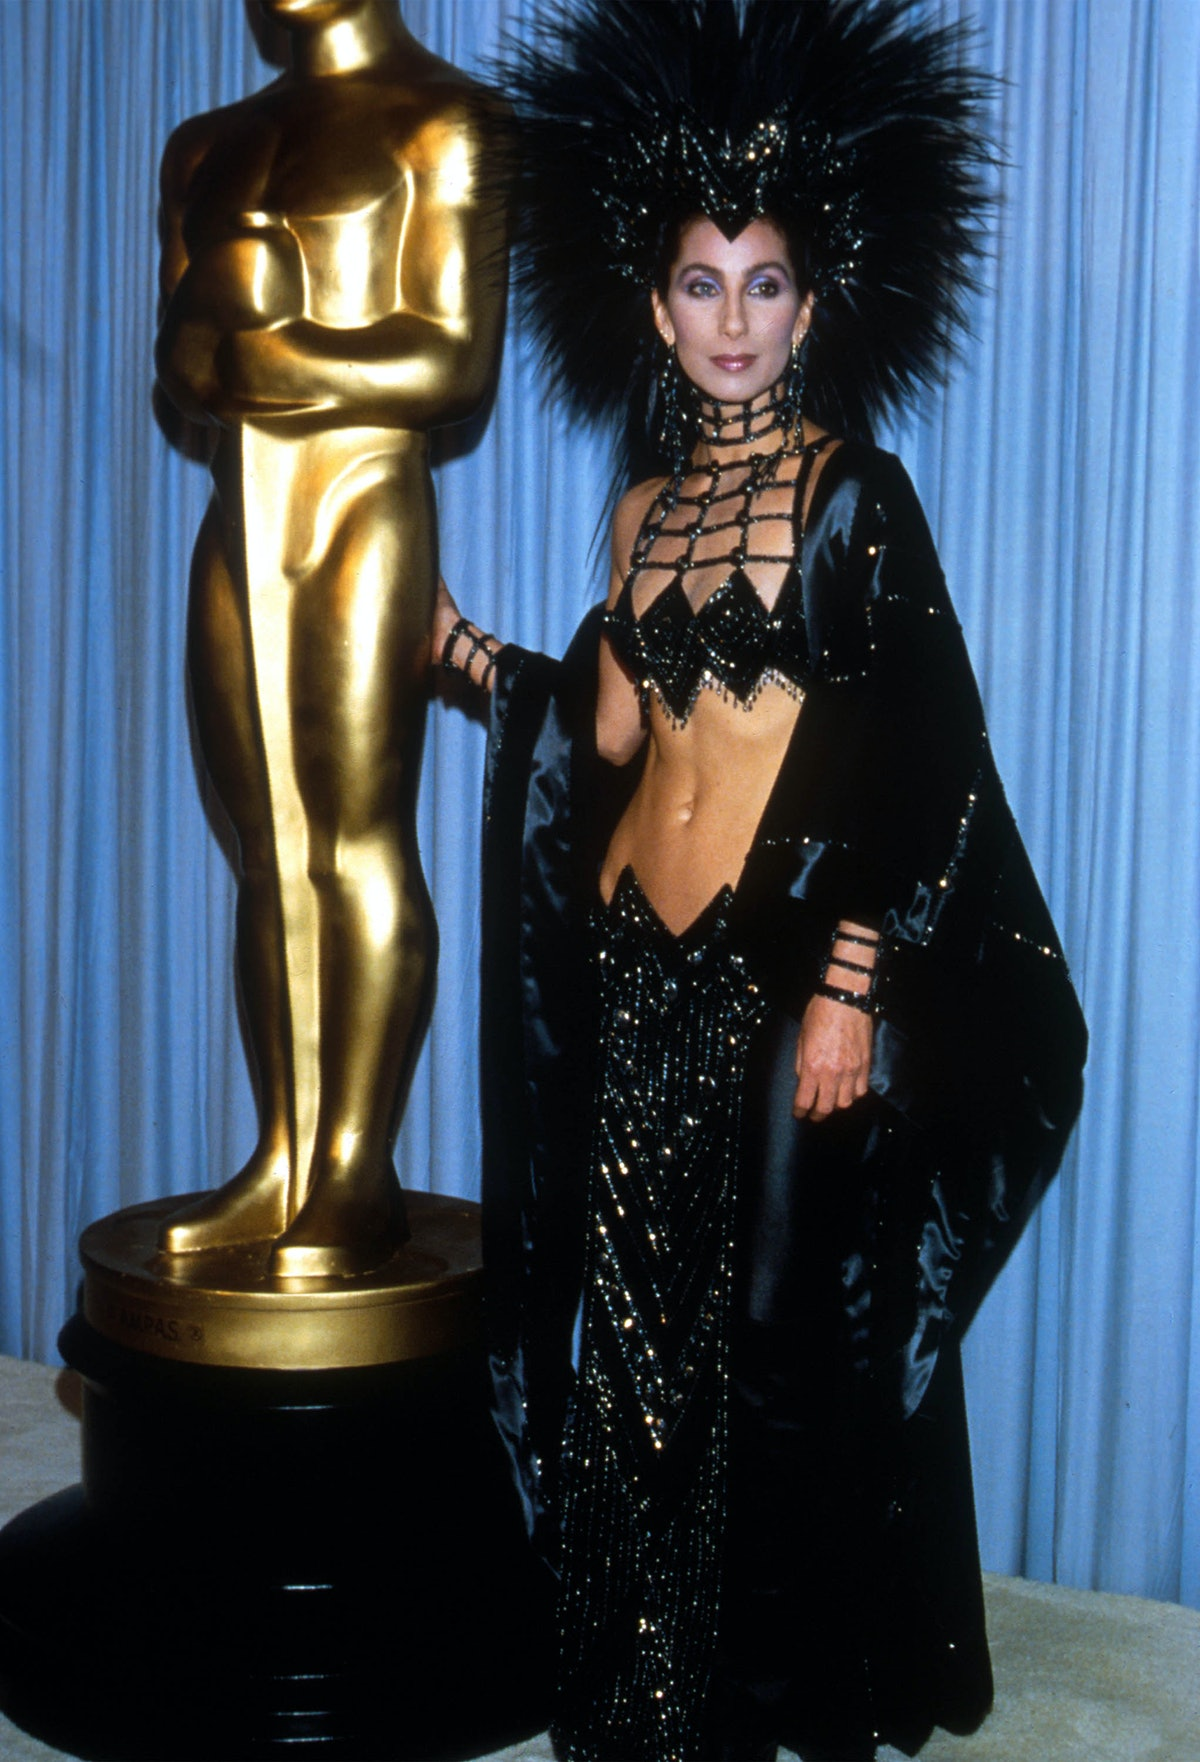 Cher wearing Bob Mackie at the Oscars